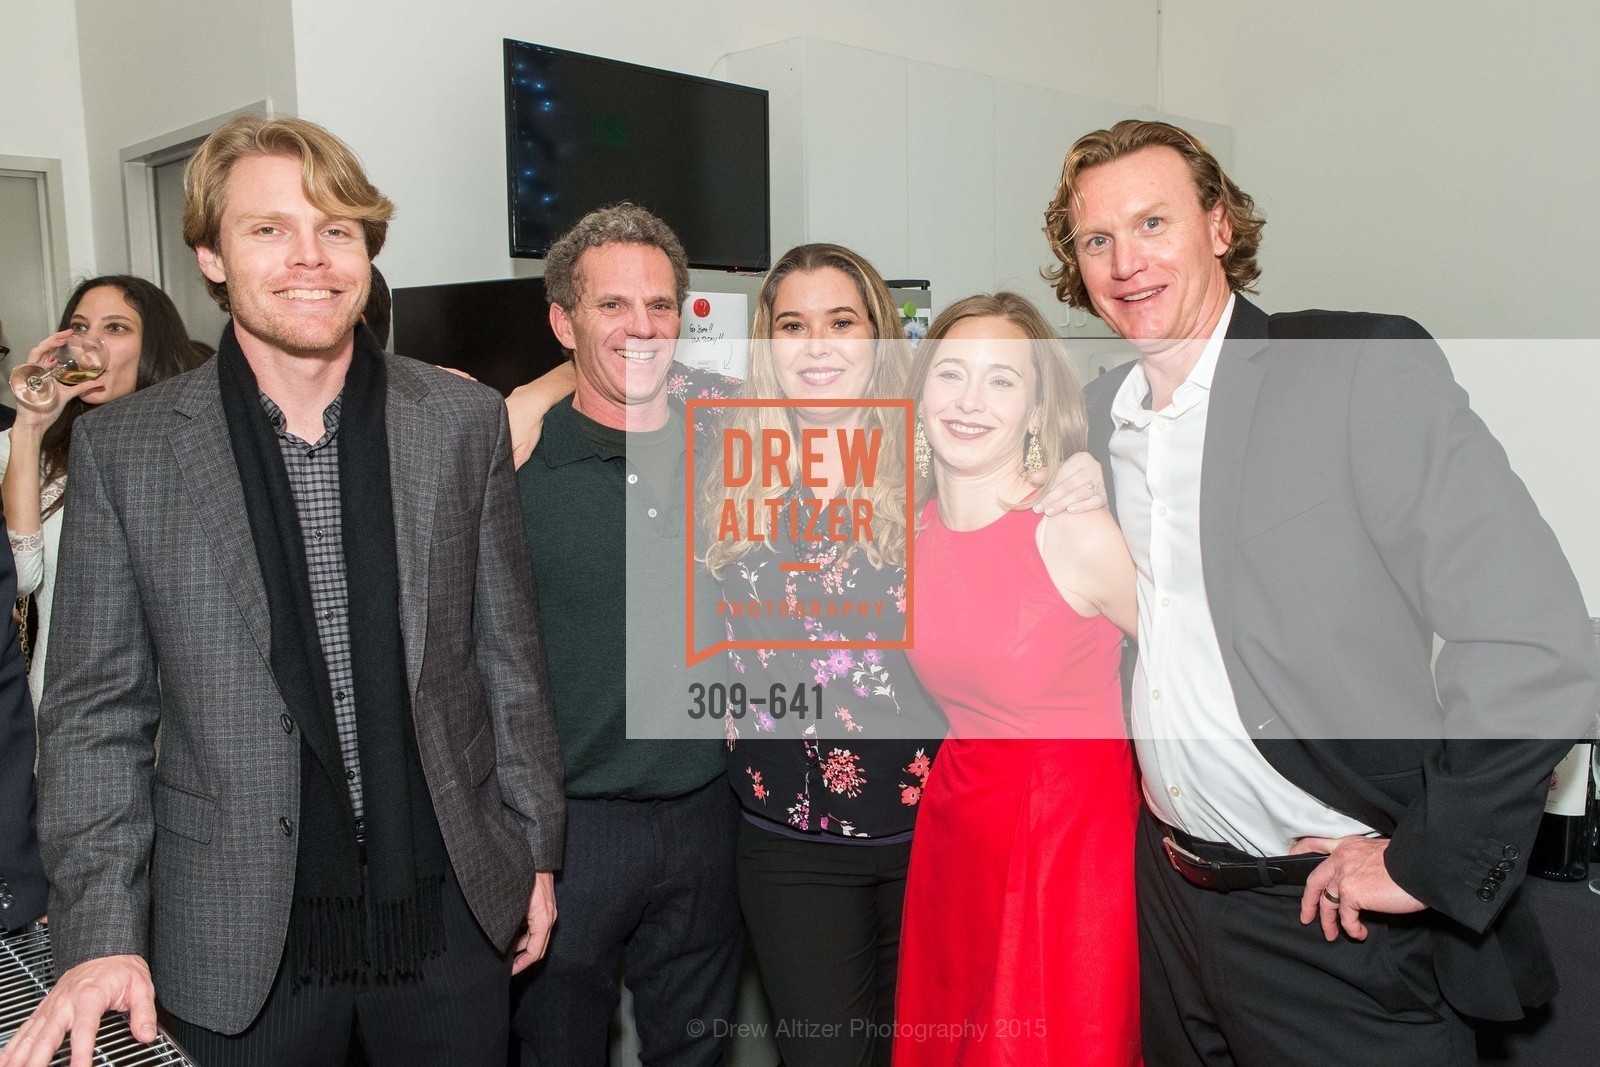 Eric Hensley, Paco Summers, Rachel Hensley, Mylea Charvat, Mark Walther, Savonix Launch Celebration and Toys for Tots Benefit, Savonix. 300 Broadway, Suite 14, December 10th, 2015,Drew Altizer, Drew Altizer Photography, full-service agency, private events, San Francisco photographer, photographer california